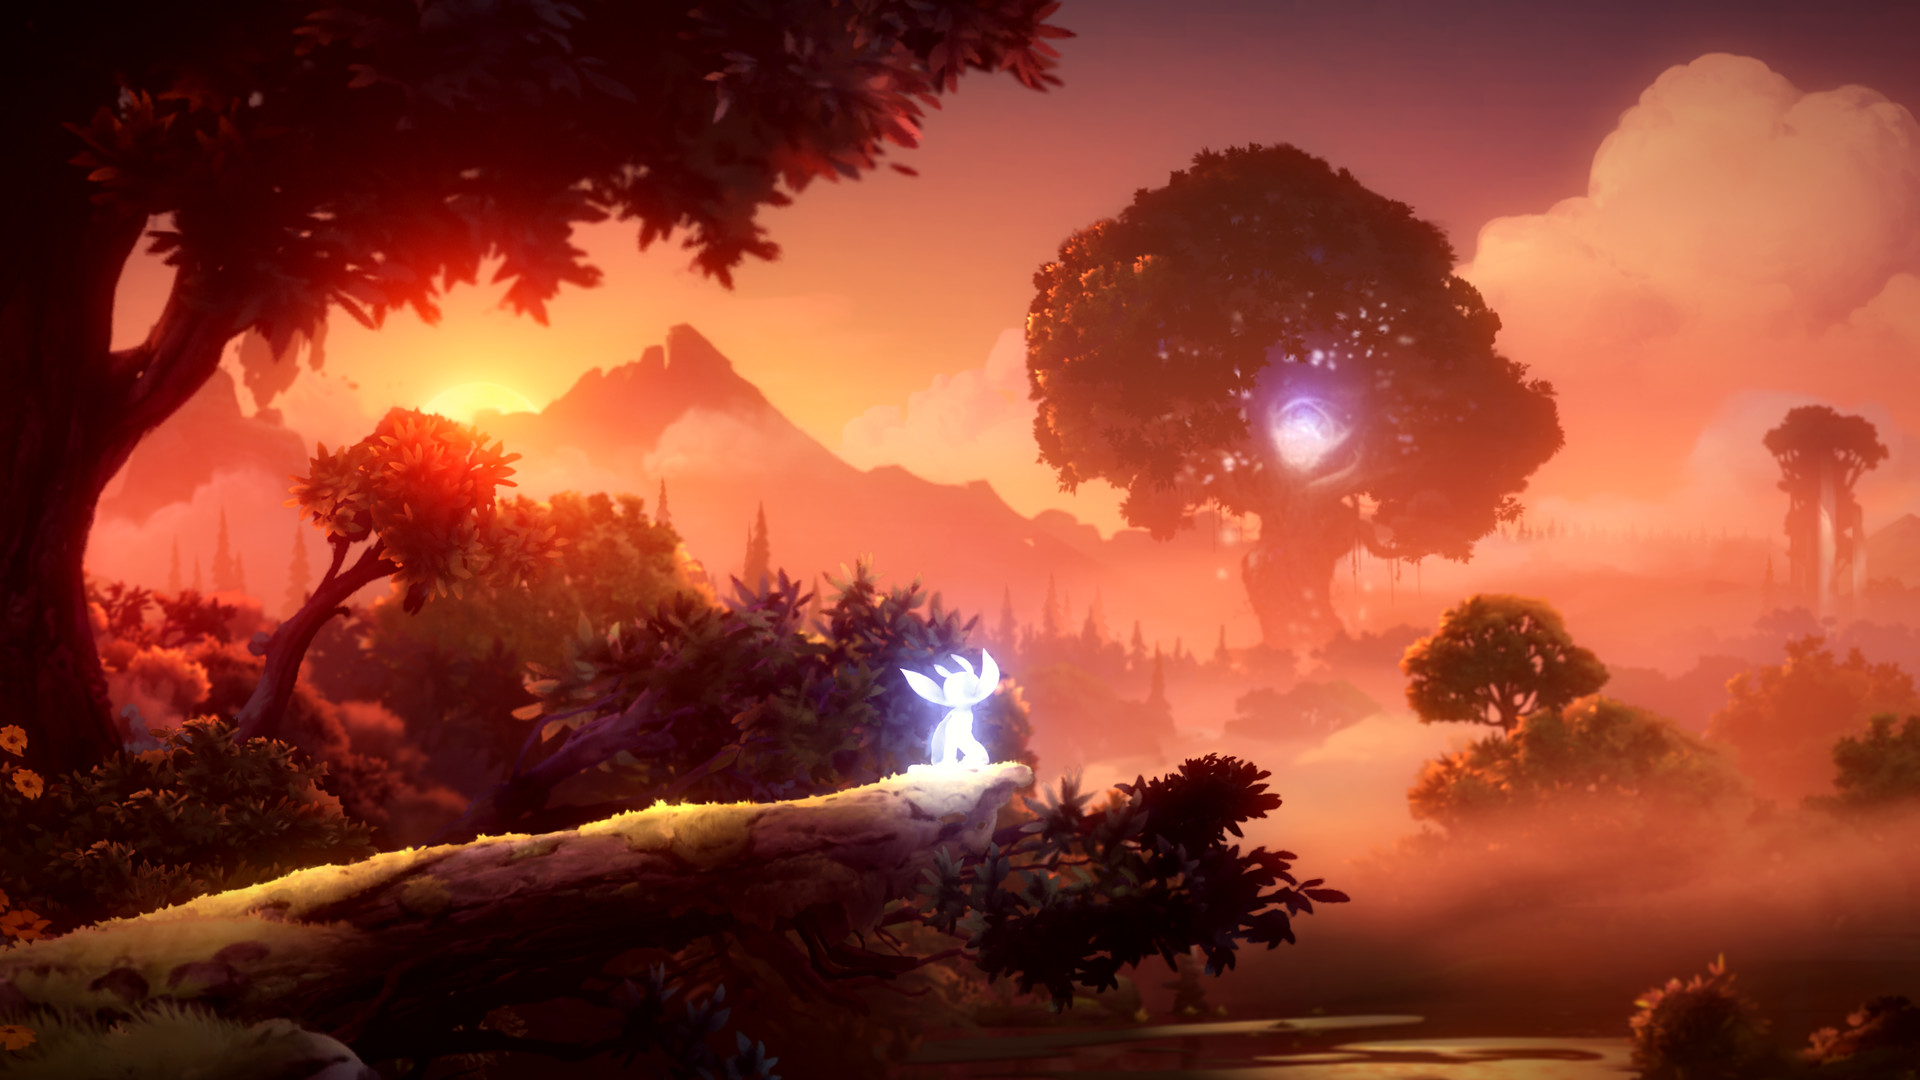 ori-and-the-will-of-the-wisps-pc-screenshot-01